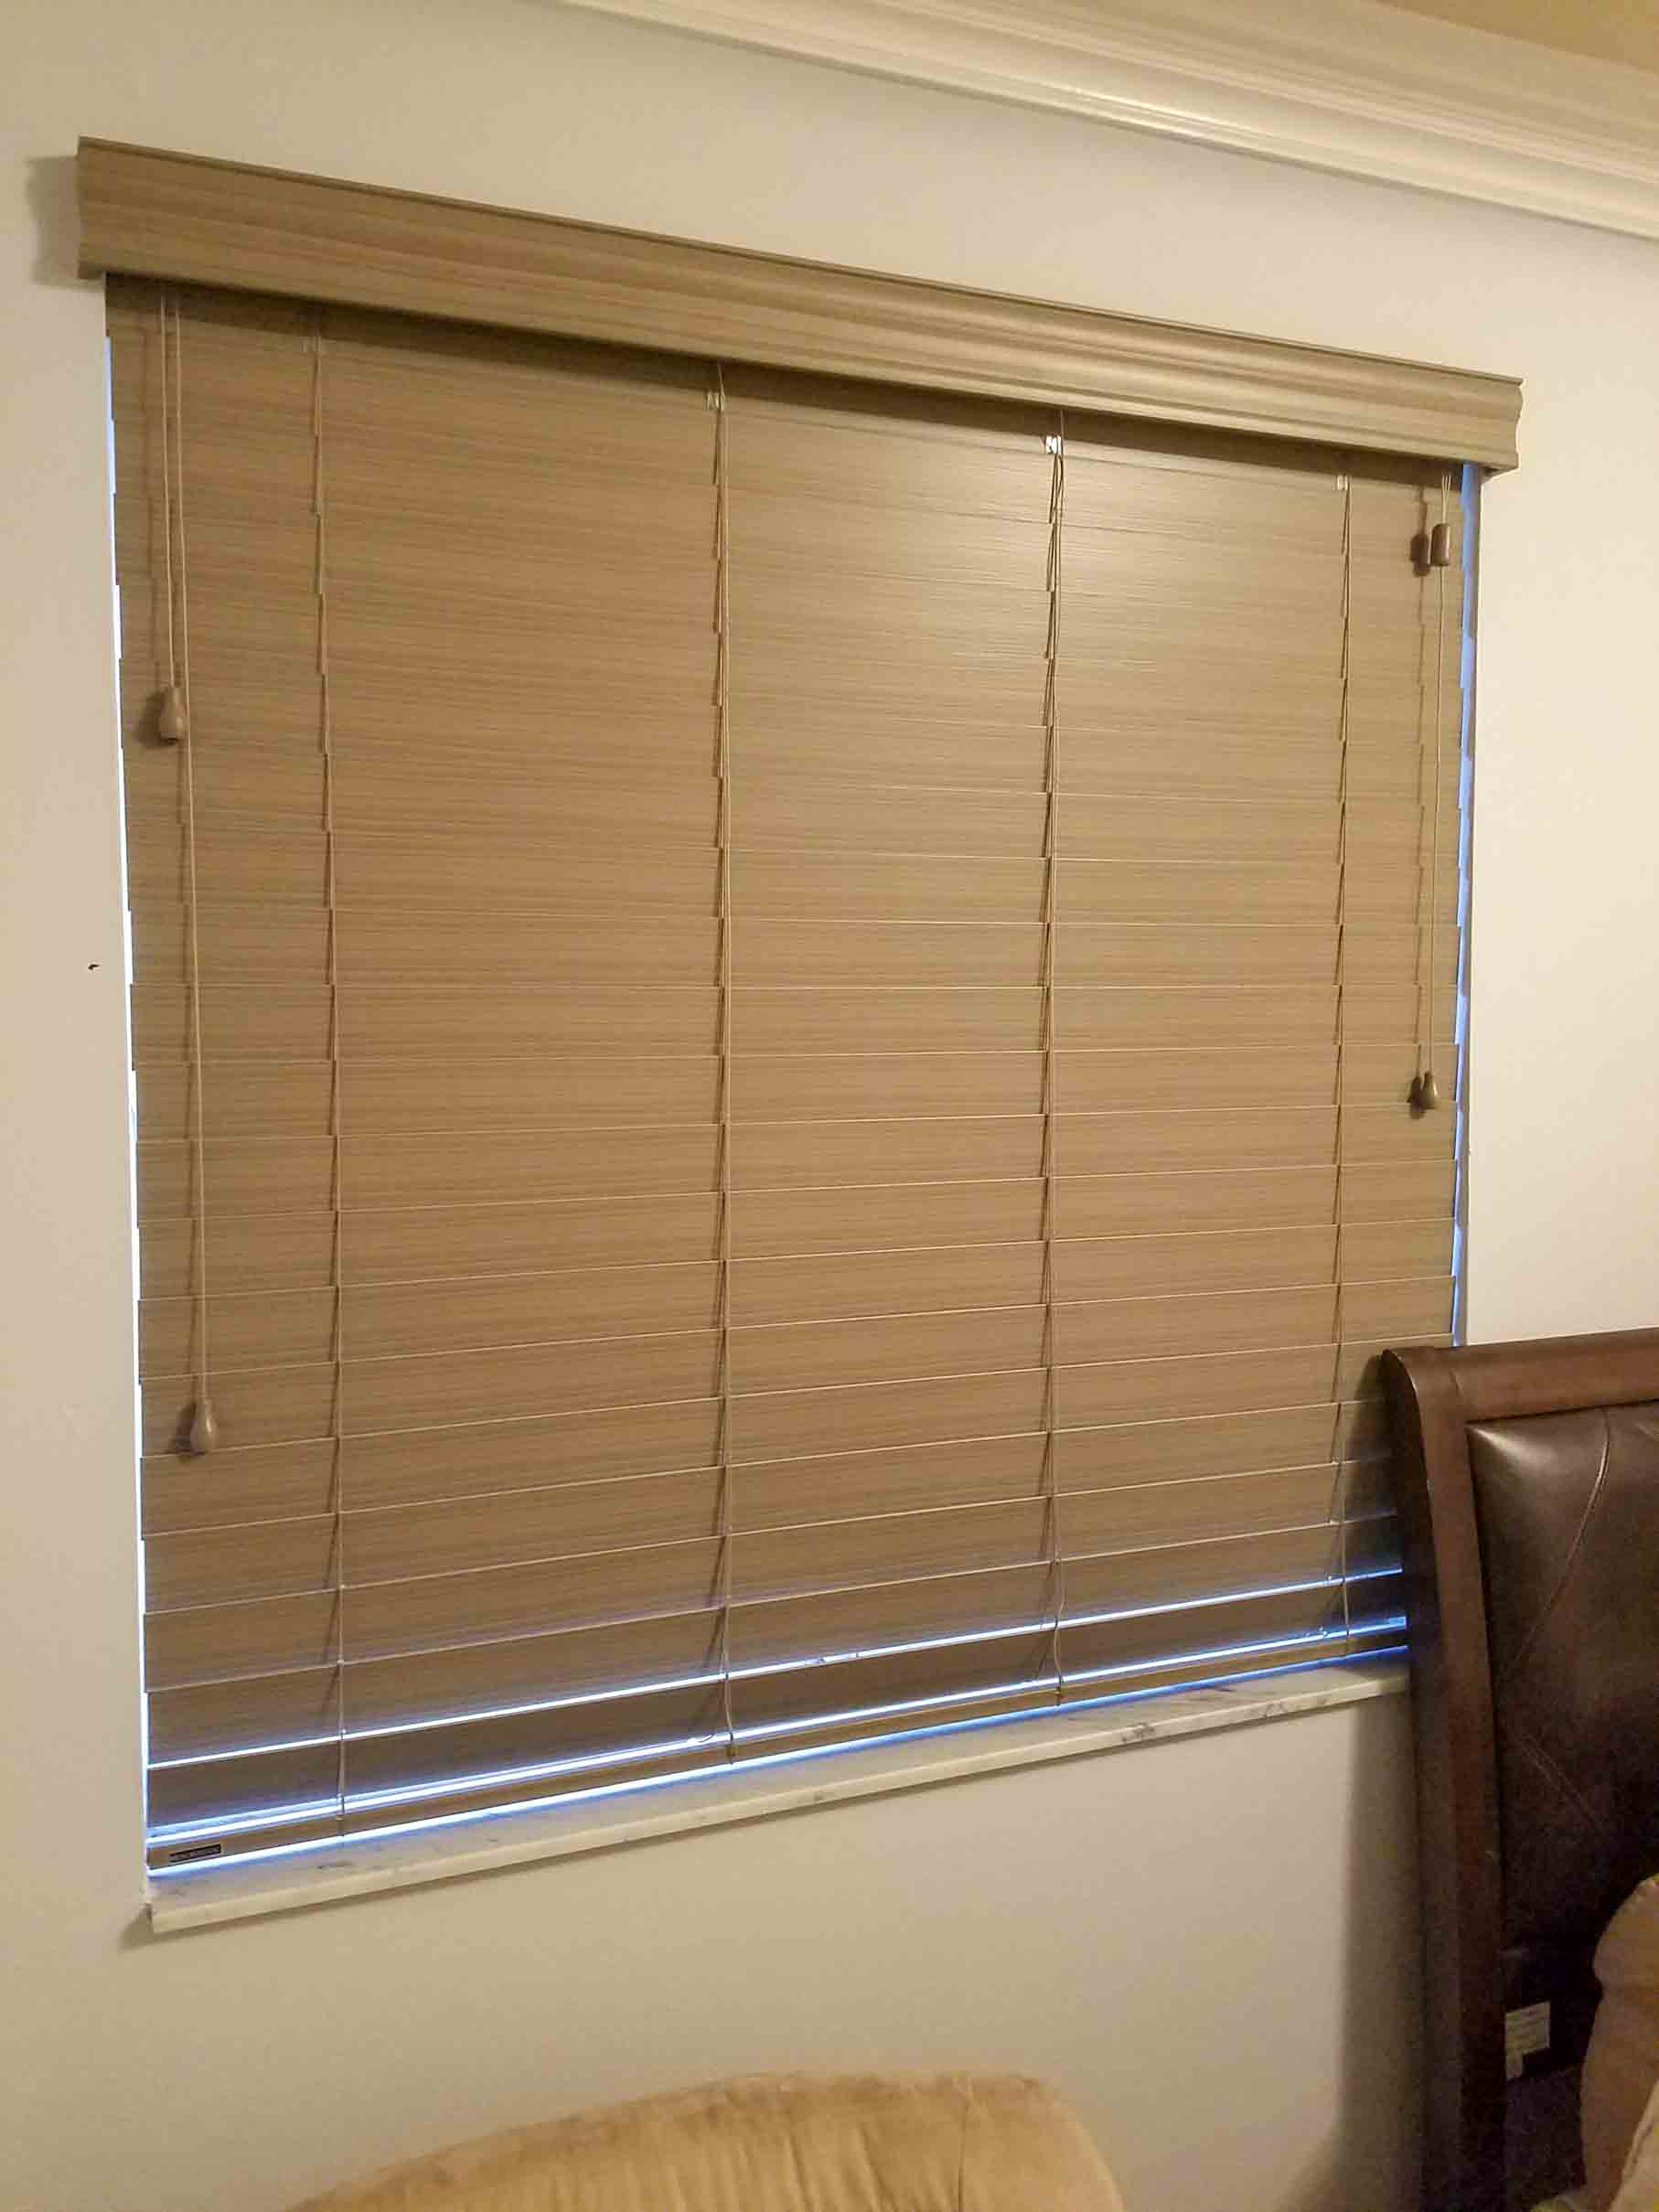 wood blinds gallery WOOD BLINDS GALLERY 20171011 184643